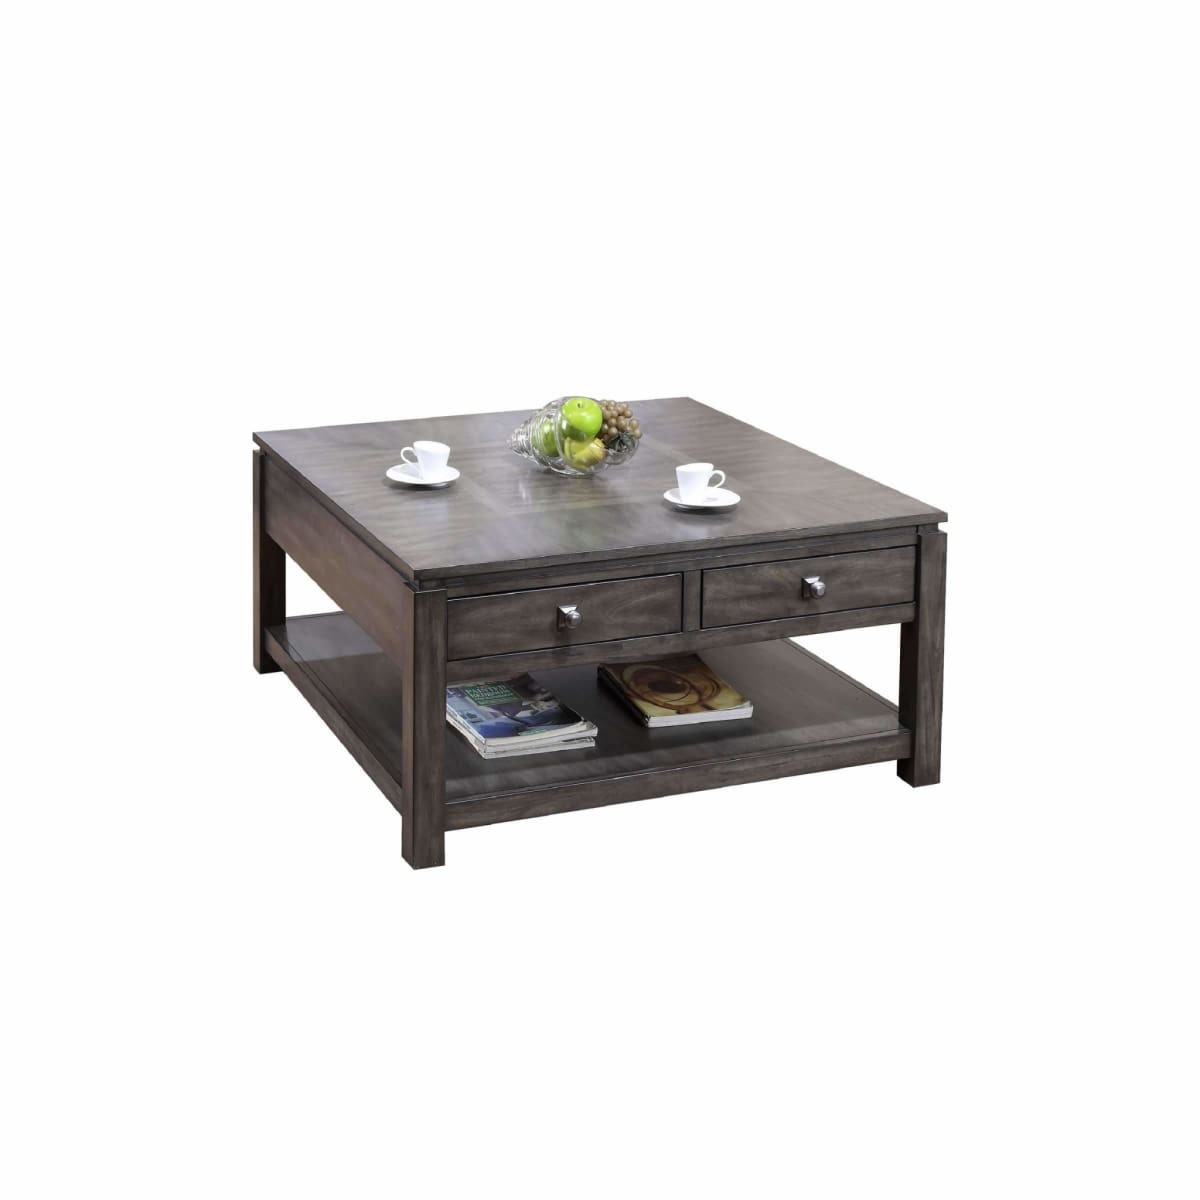 Lancaster 40 Square Coffee Table - COFFEE TABLE